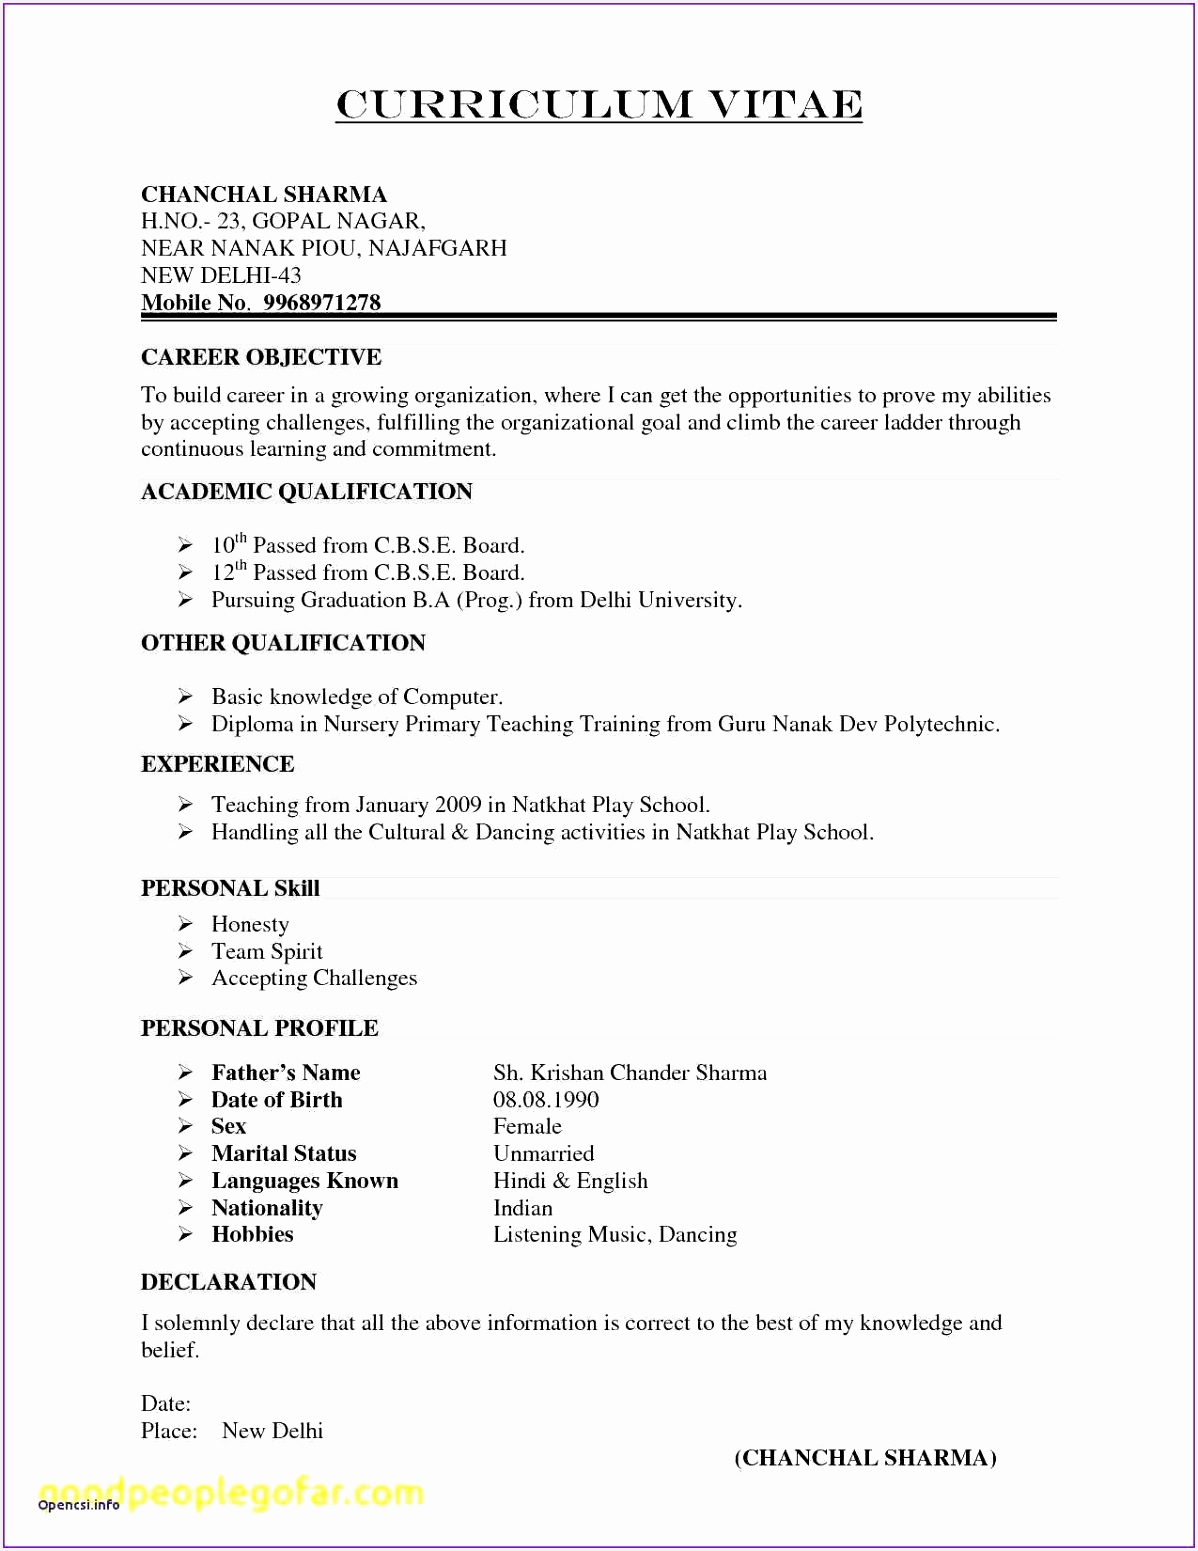 Microsoft Trainer Sample Resume Dcwig Elegant 53 Elegant Microsoft Word Free Resume Templates Awesome Resume Of Microsoft Trainer Sample Resume Vjdoe Unique Sample Pilot Resume – Microsoft Dynamics Ax Sample Resume Archives